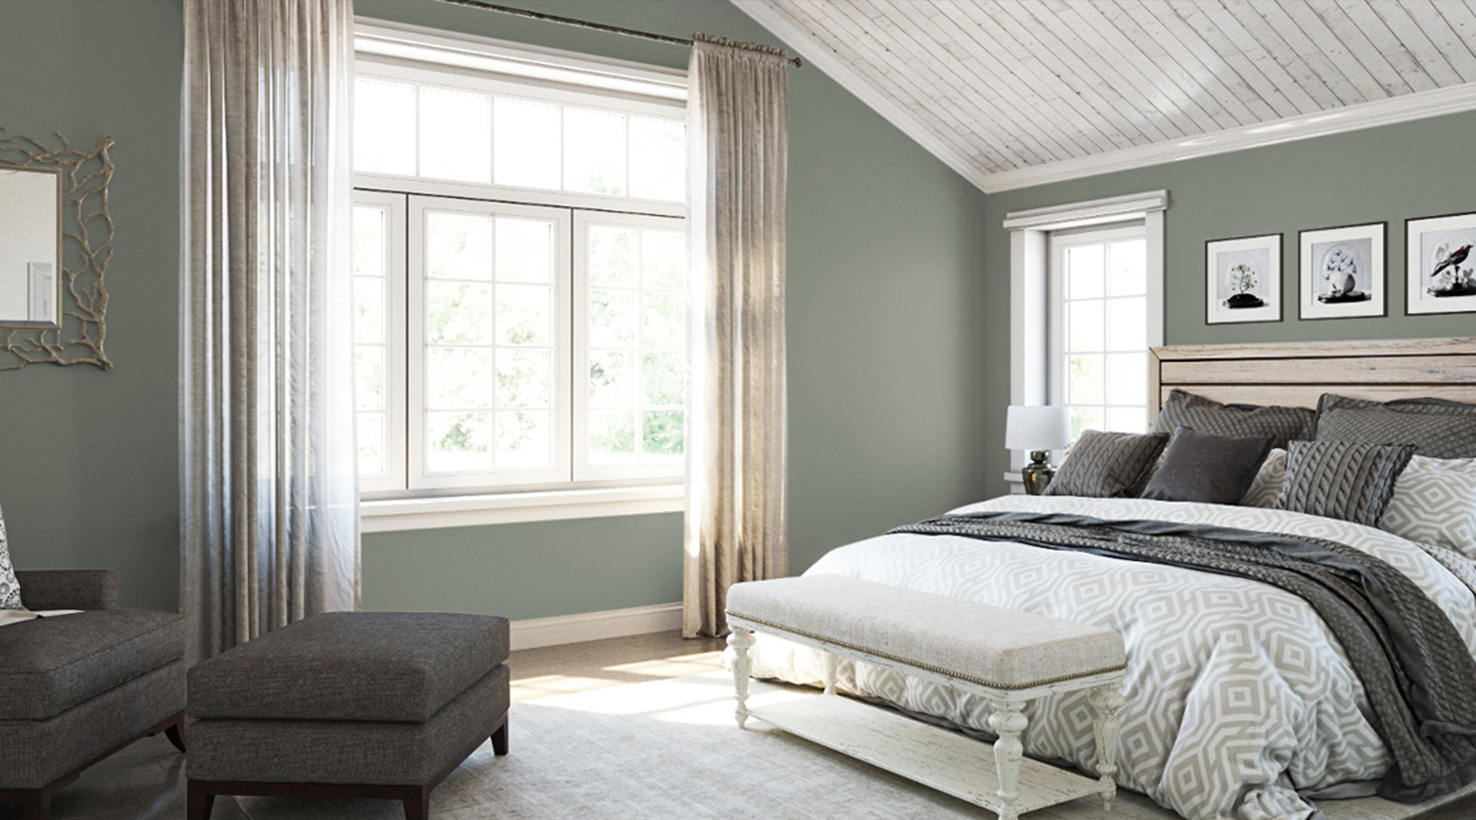 Bedroom Paint Color Ideas   Inspiration Gallery   Sherwin Williams     Bedroom   Greens